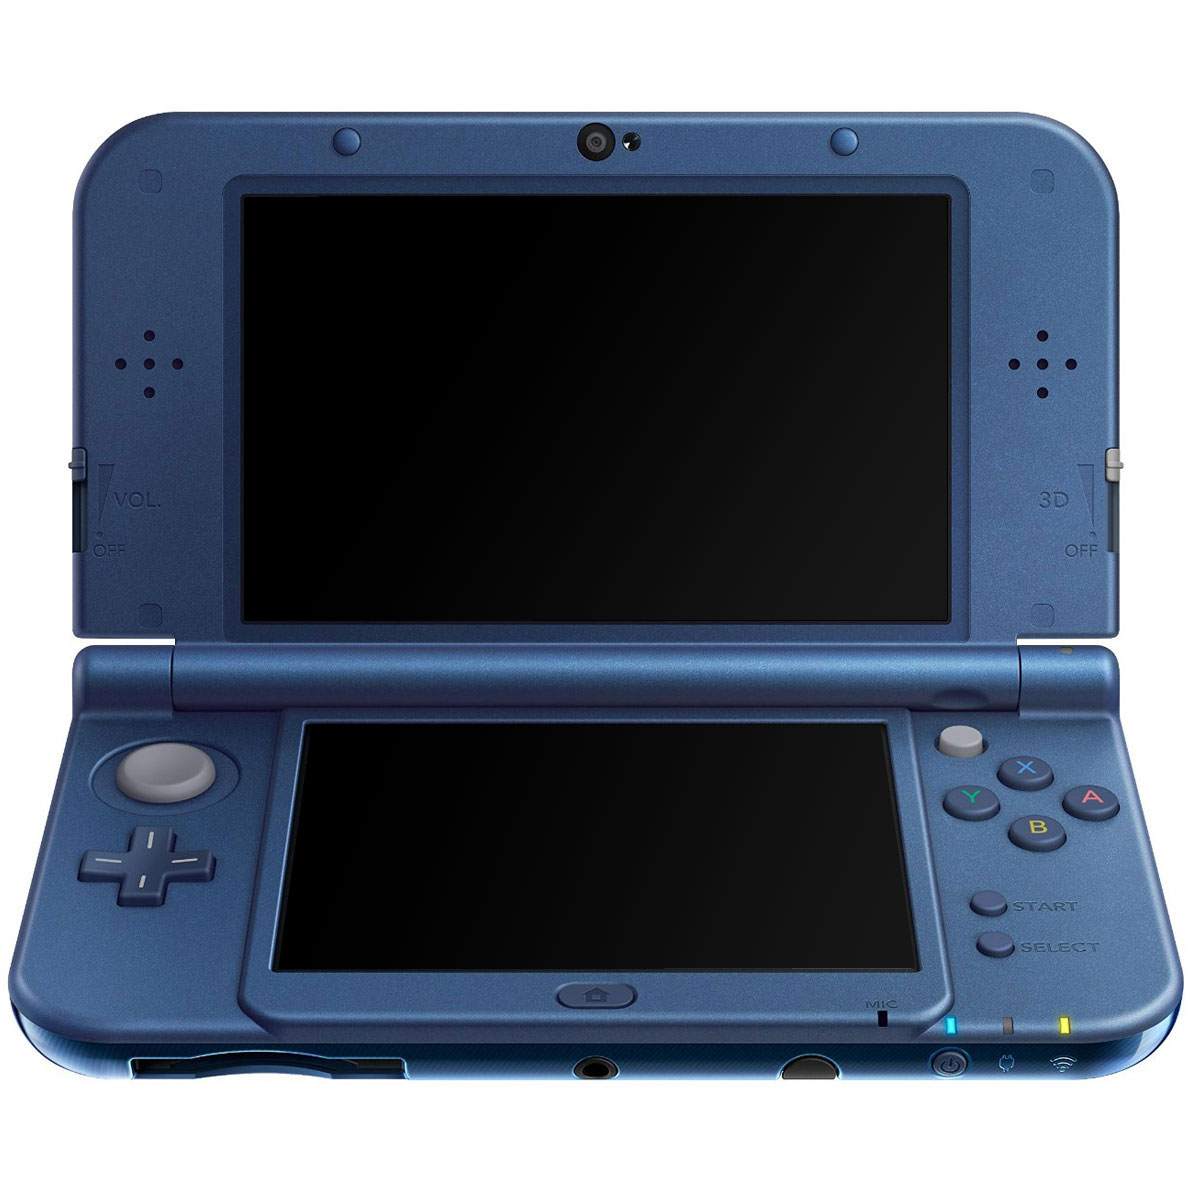 nintendo new 3ds xl bleue console nintendo 3ds nintendo sur ldlc. Black Bedroom Furniture Sets. Home Design Ideas